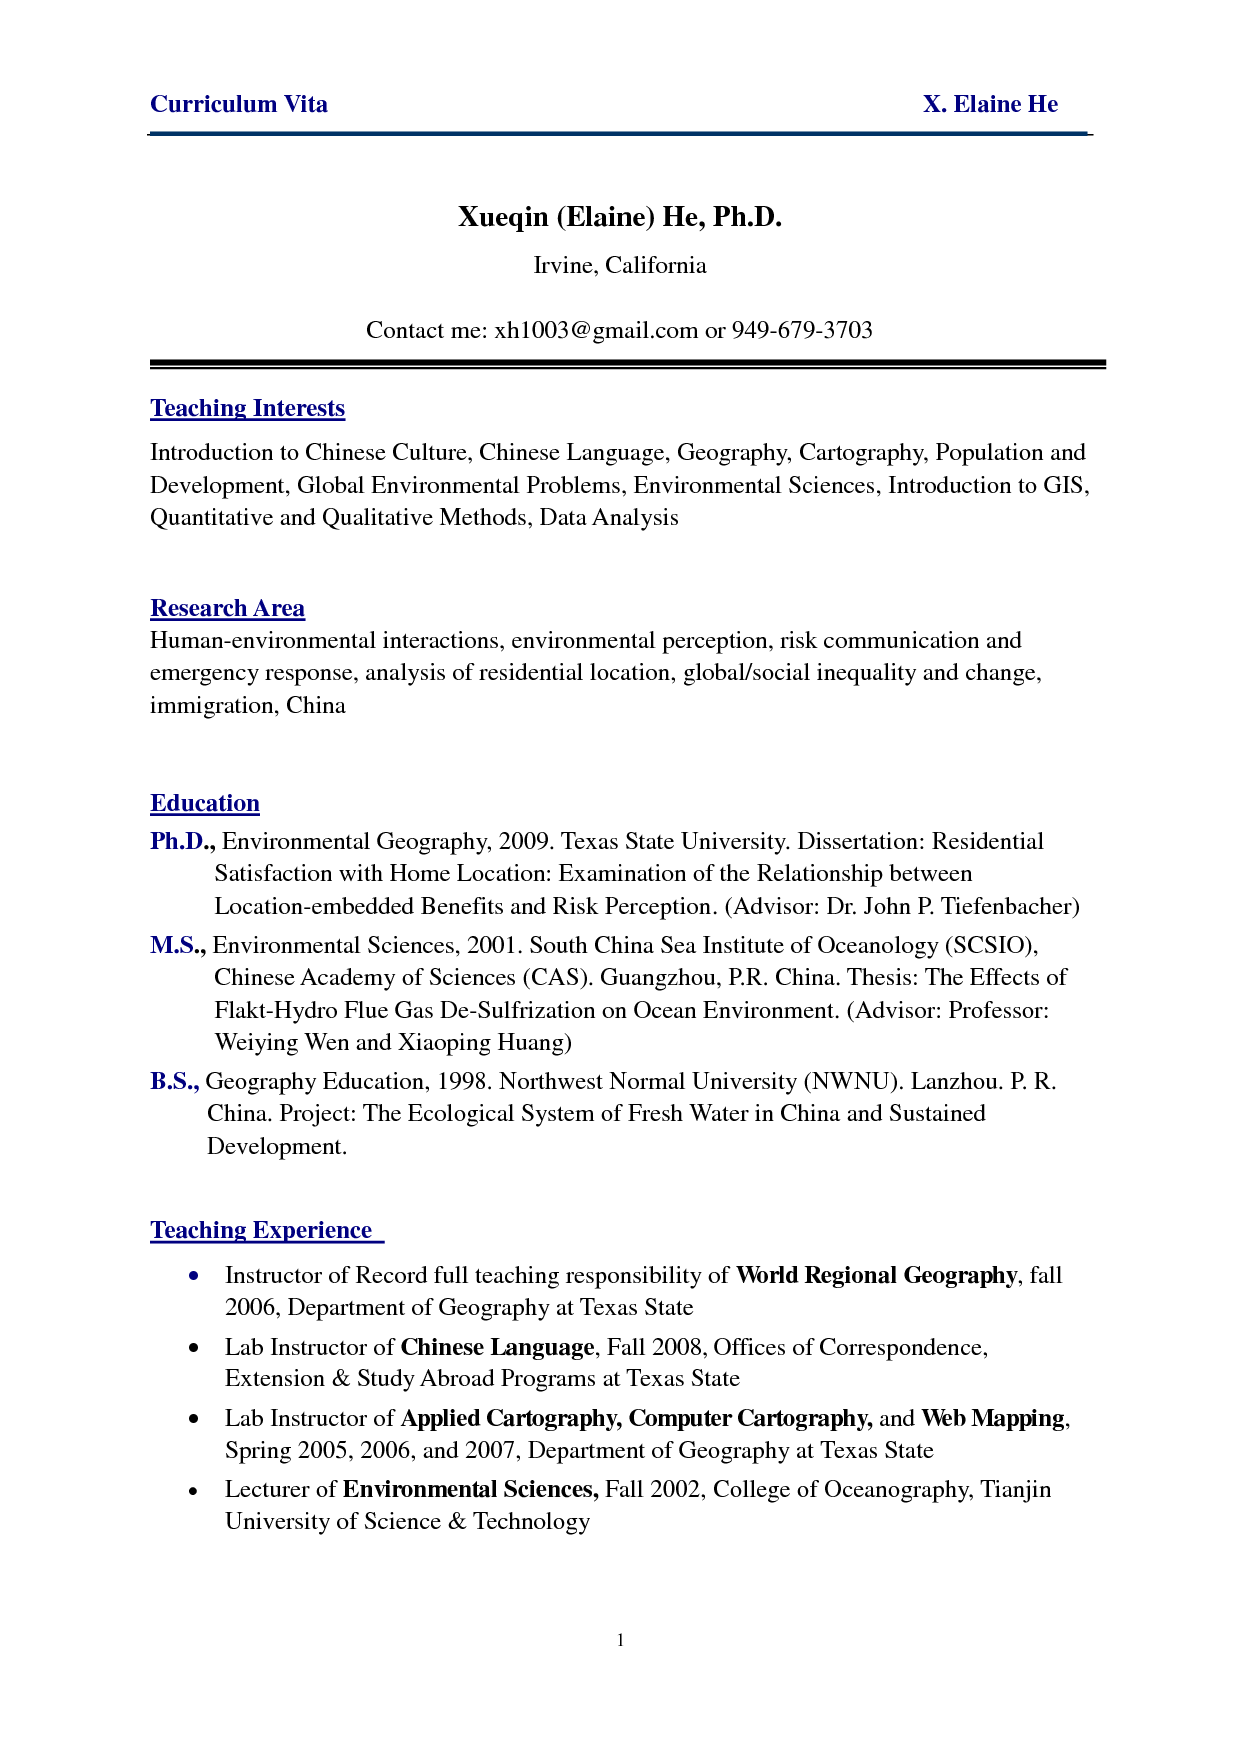 Whole Foods Cover Letter Classy New Grad Lpn Resume Sample  Nursing Hacked  Pinterest  Interiors Review